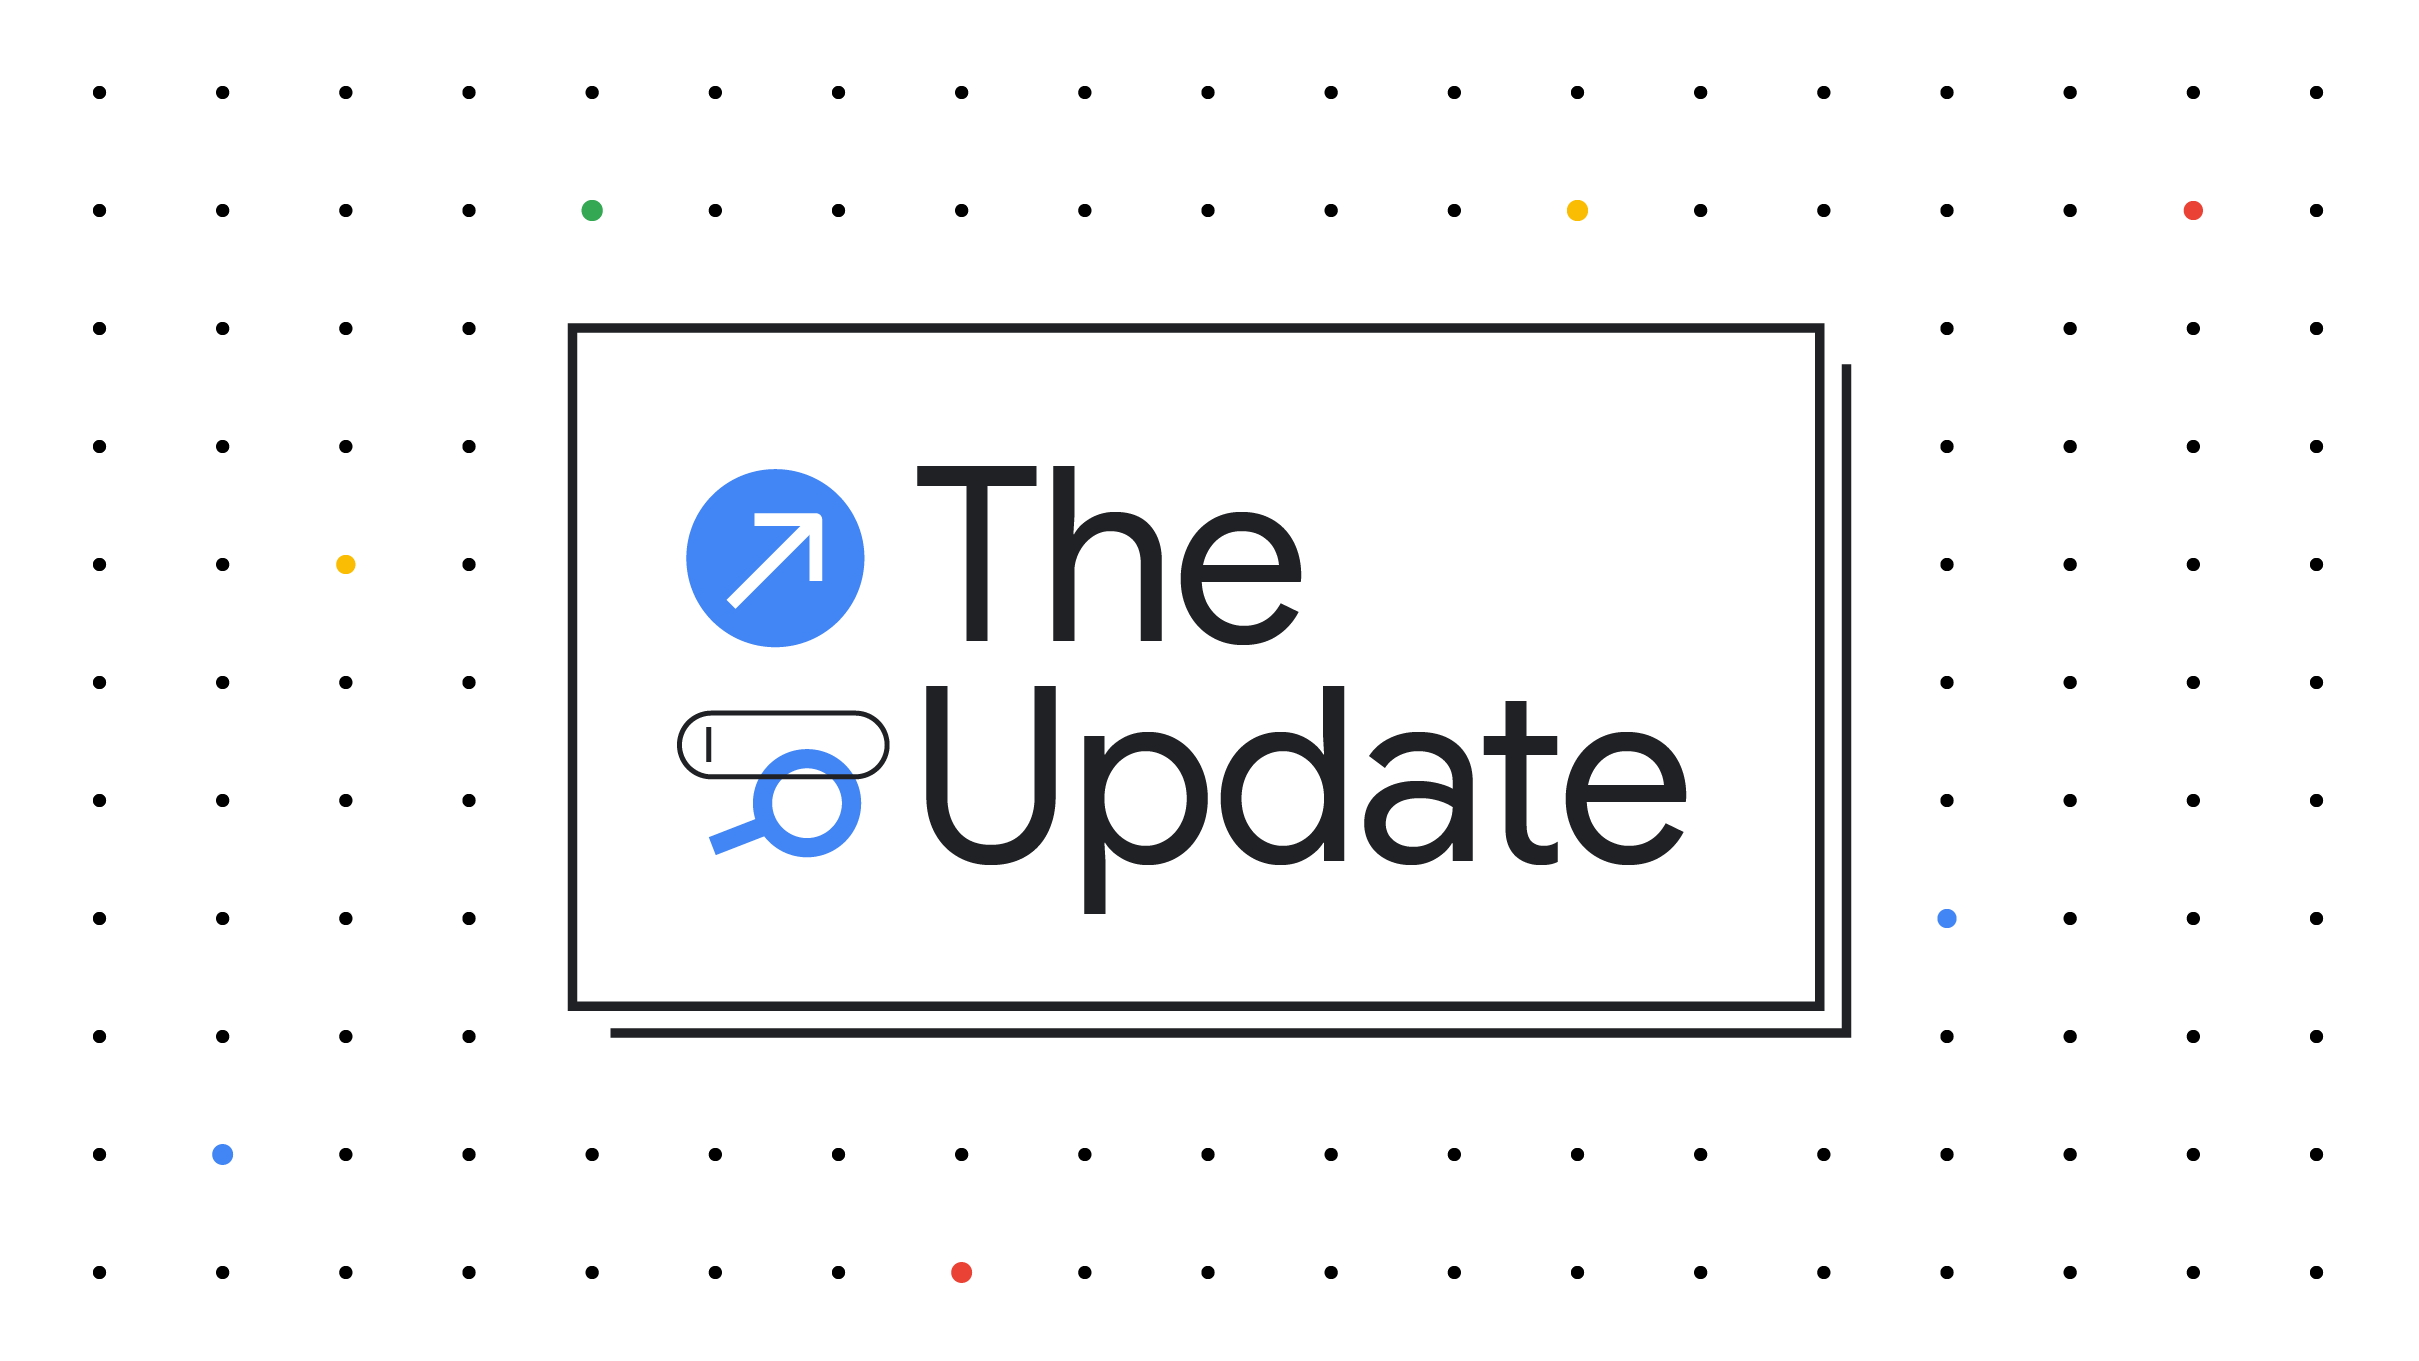 The update -  i leader di Google e gli esperti del settore condividono insight utili ai professionisti del marketing in questo momento.